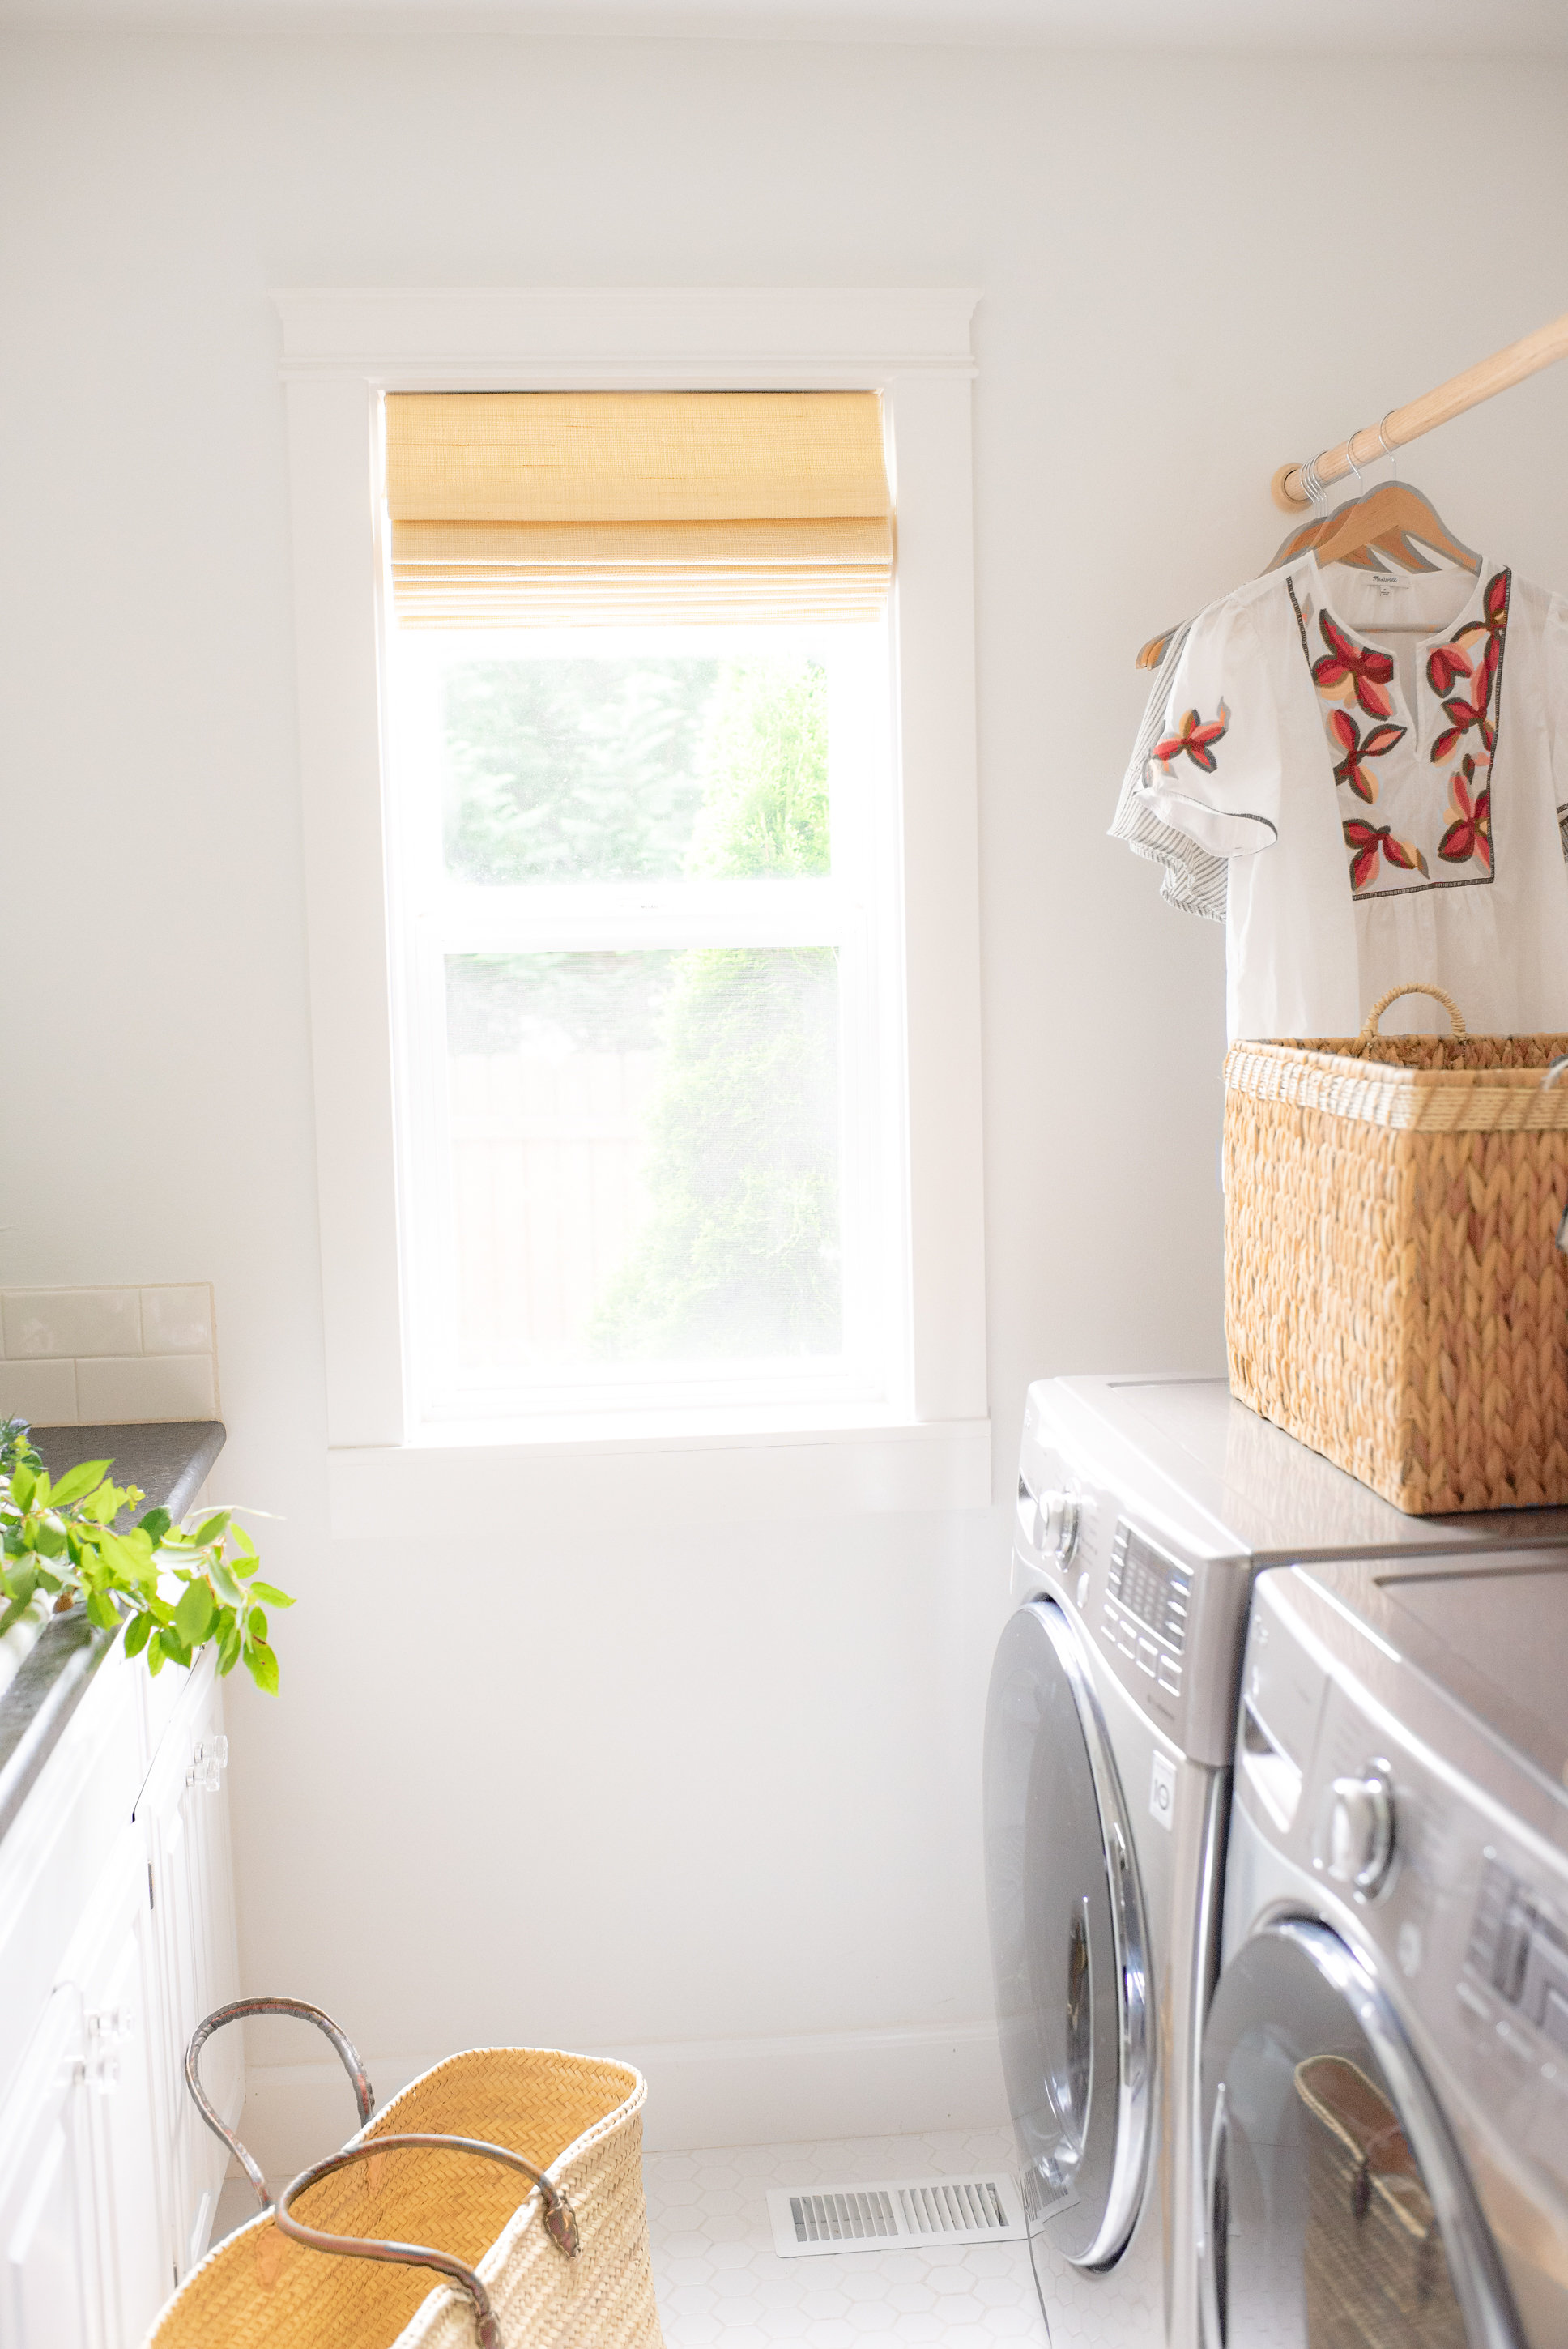 Corvallis_Eclectic_Traditional-10340.jpg